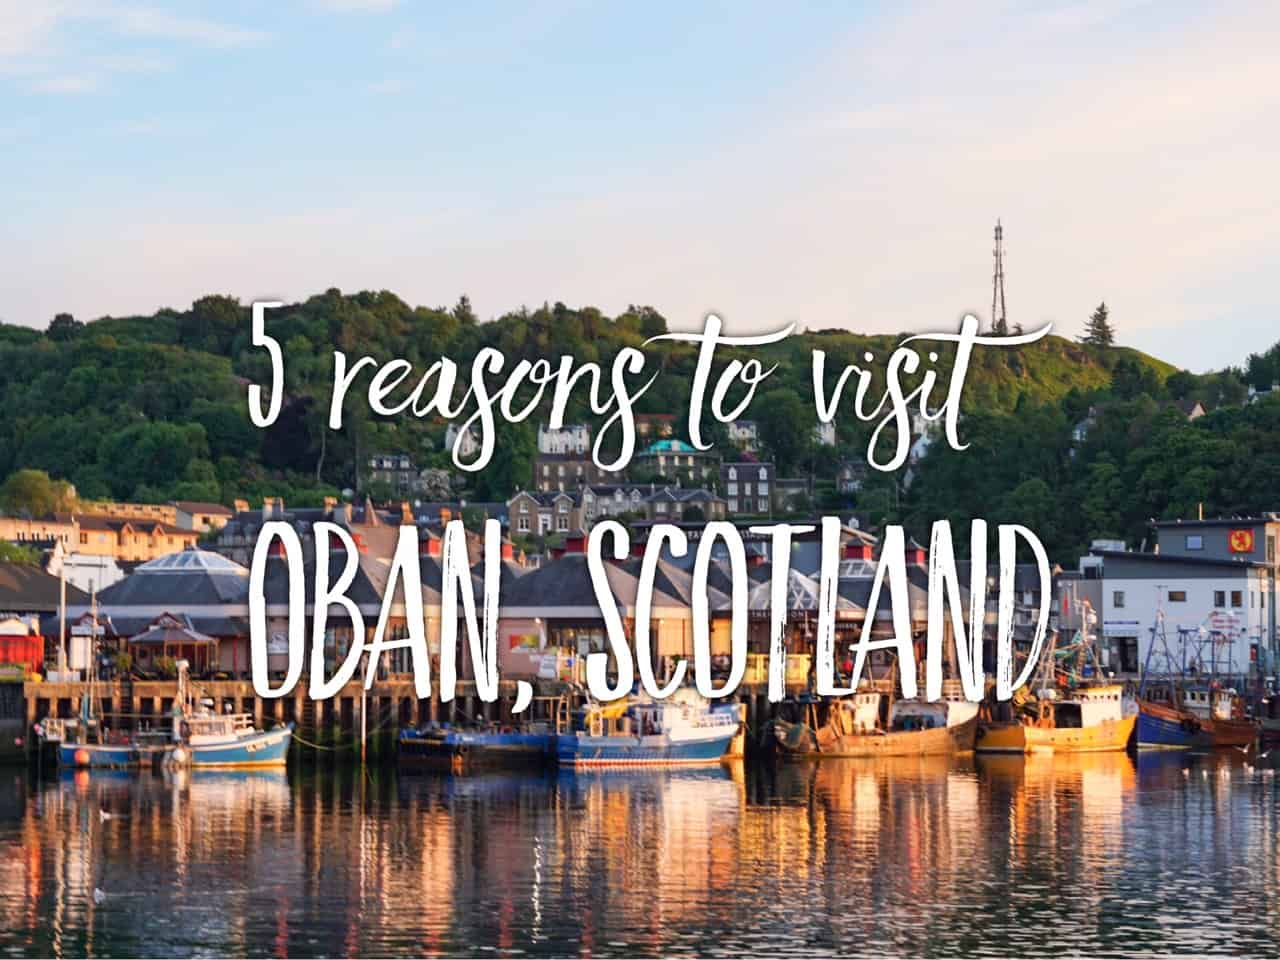 5 reasons to visit Oban, Scotland. Edinburgh to Oban